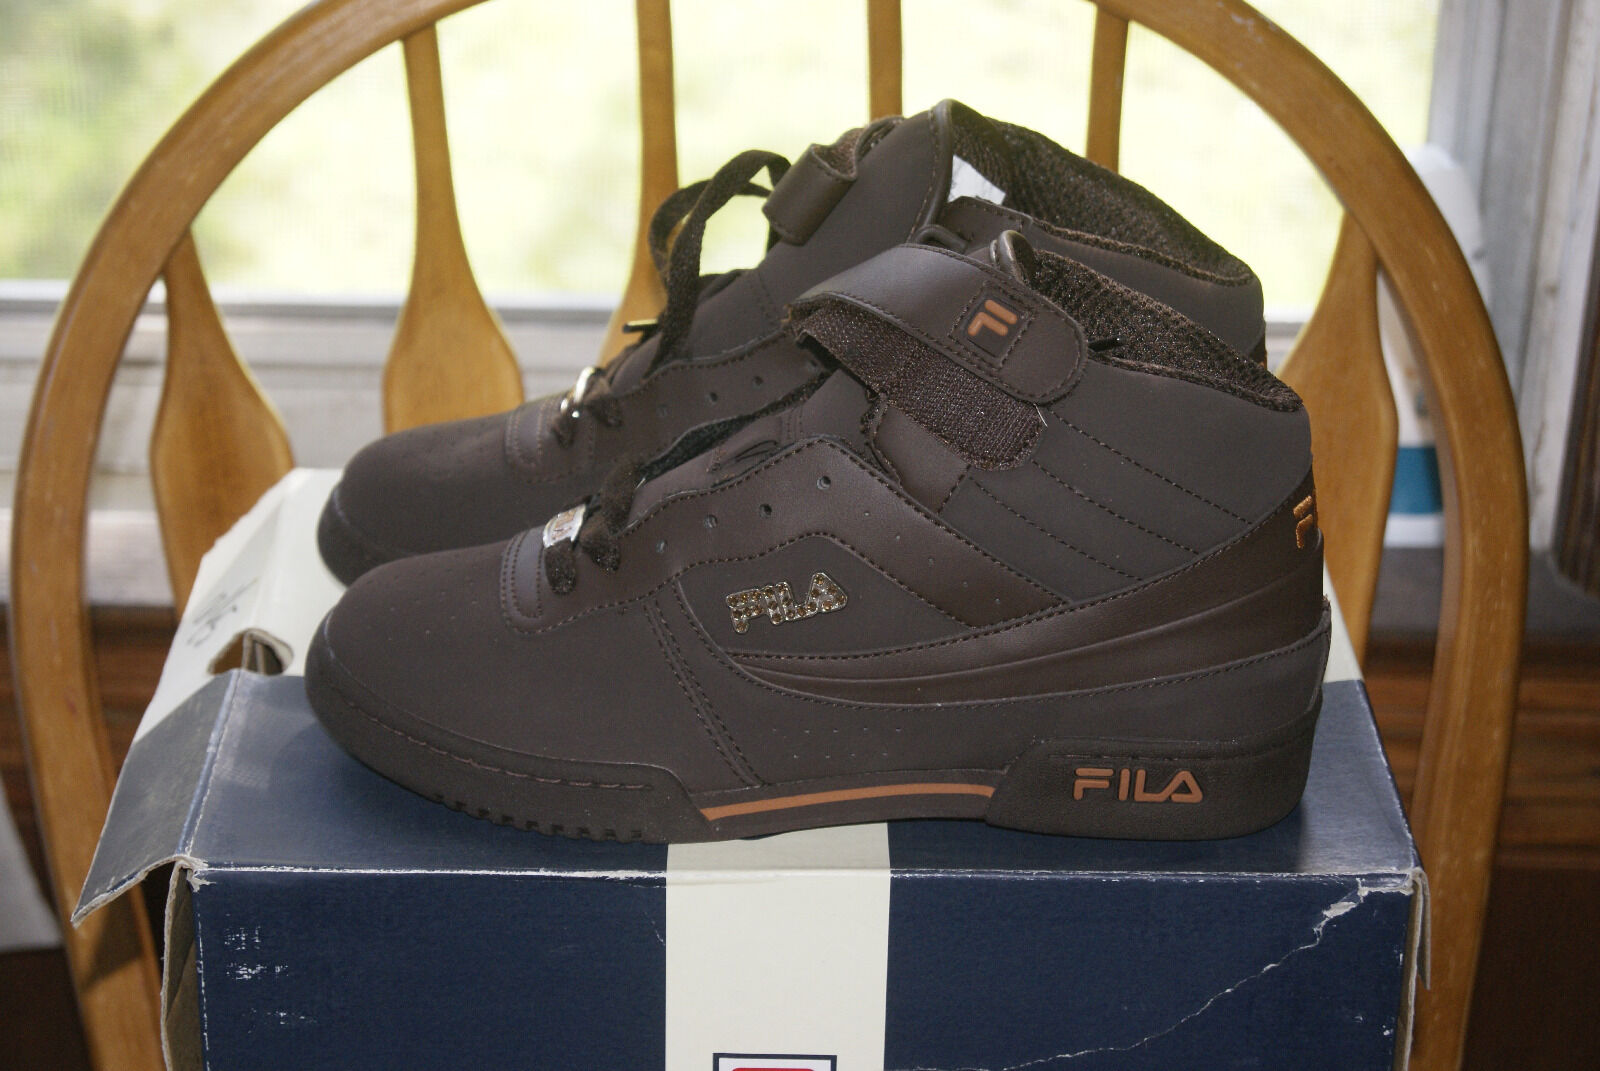 Women's Fila F 13 Gem FB / Syn Brown Orange 7.5 or 8 New shoes for men and women, limited time discount